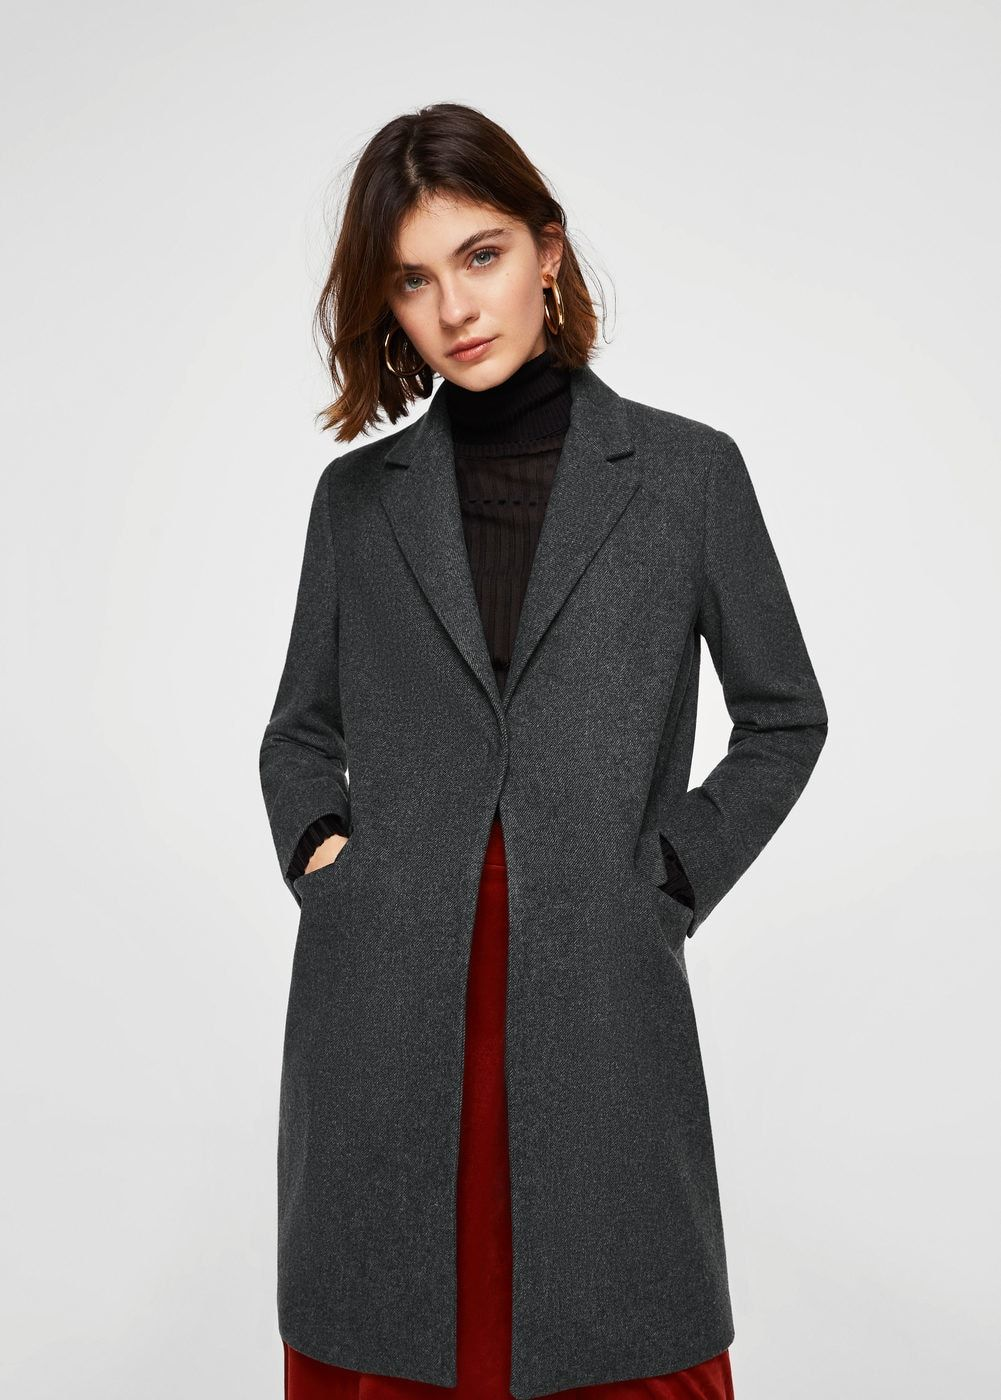 29356173ea Wool mix fabric Classic design Structured design Quilted panels on the  shoulders Lapels Two welt pockets on the front Long sleeve Inner lining